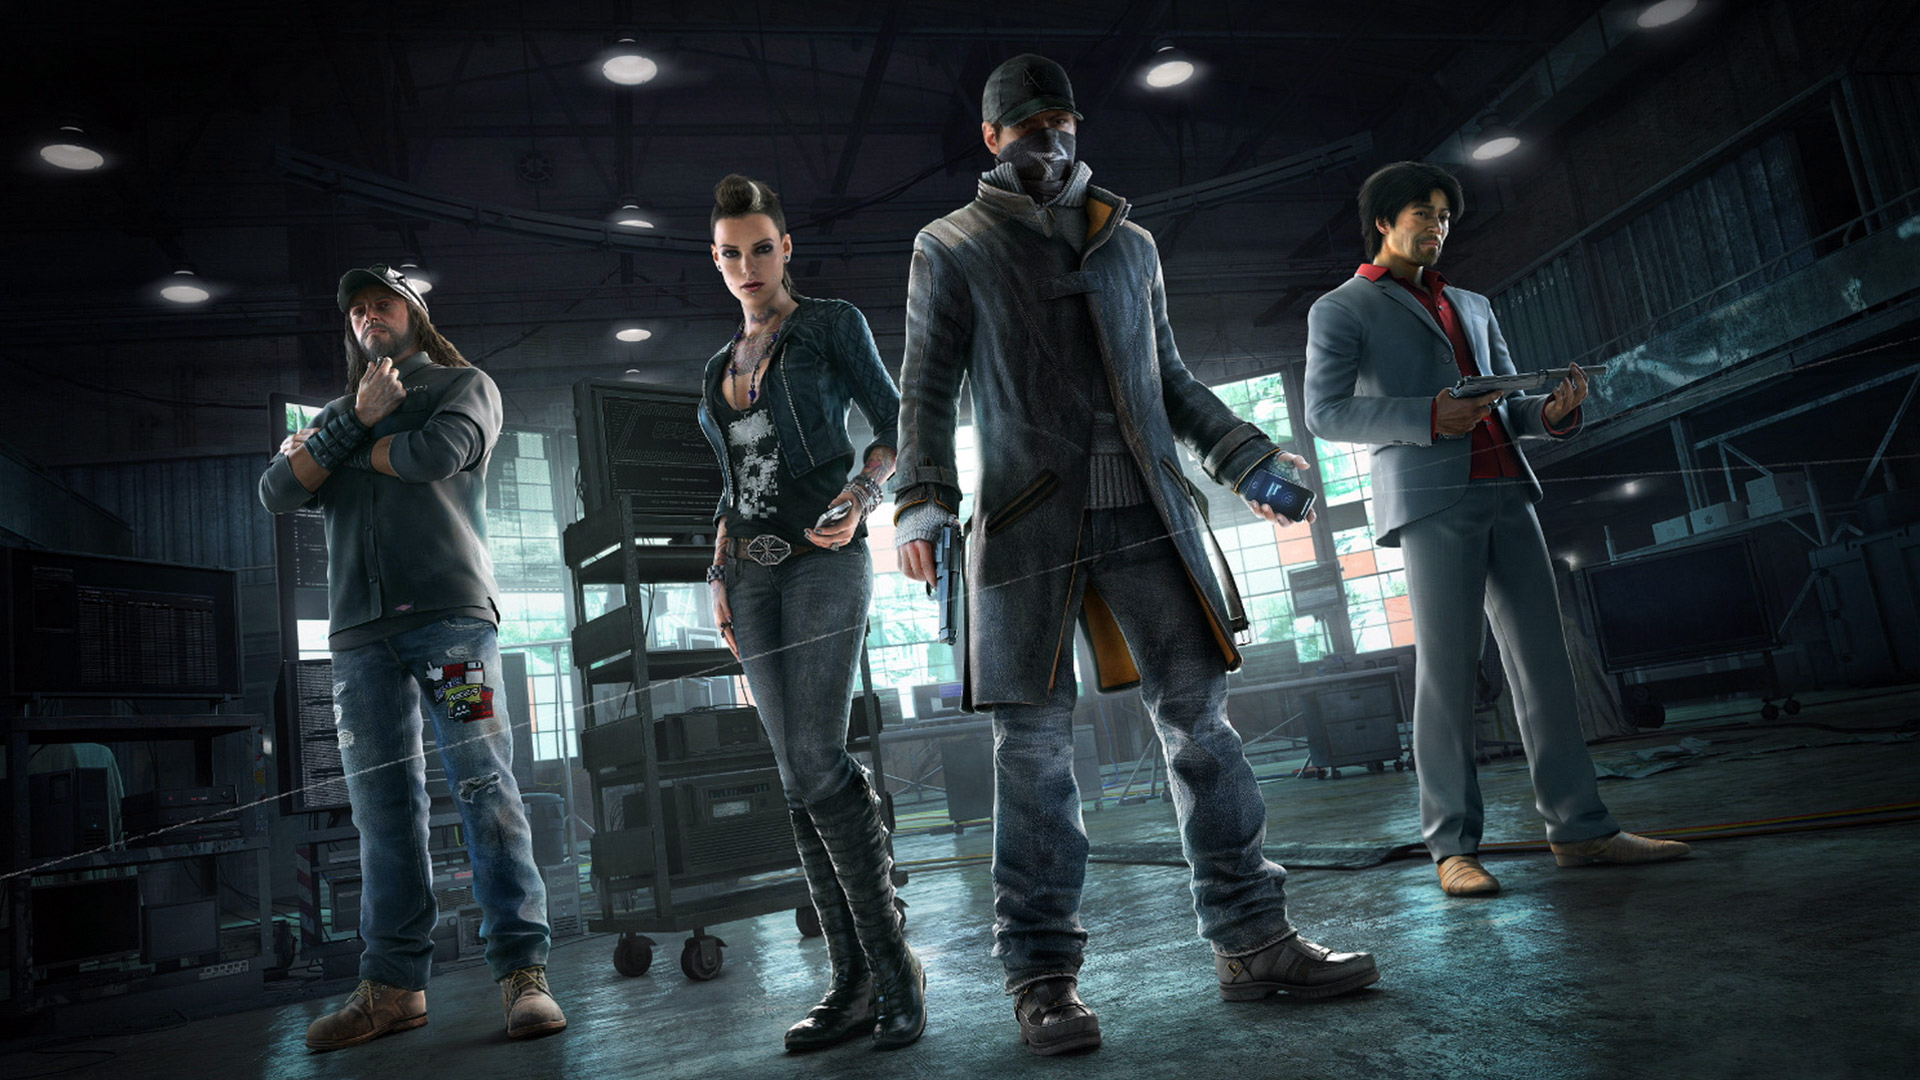 Watch Dogs Game Characters Wallpaper HD 1920x1080